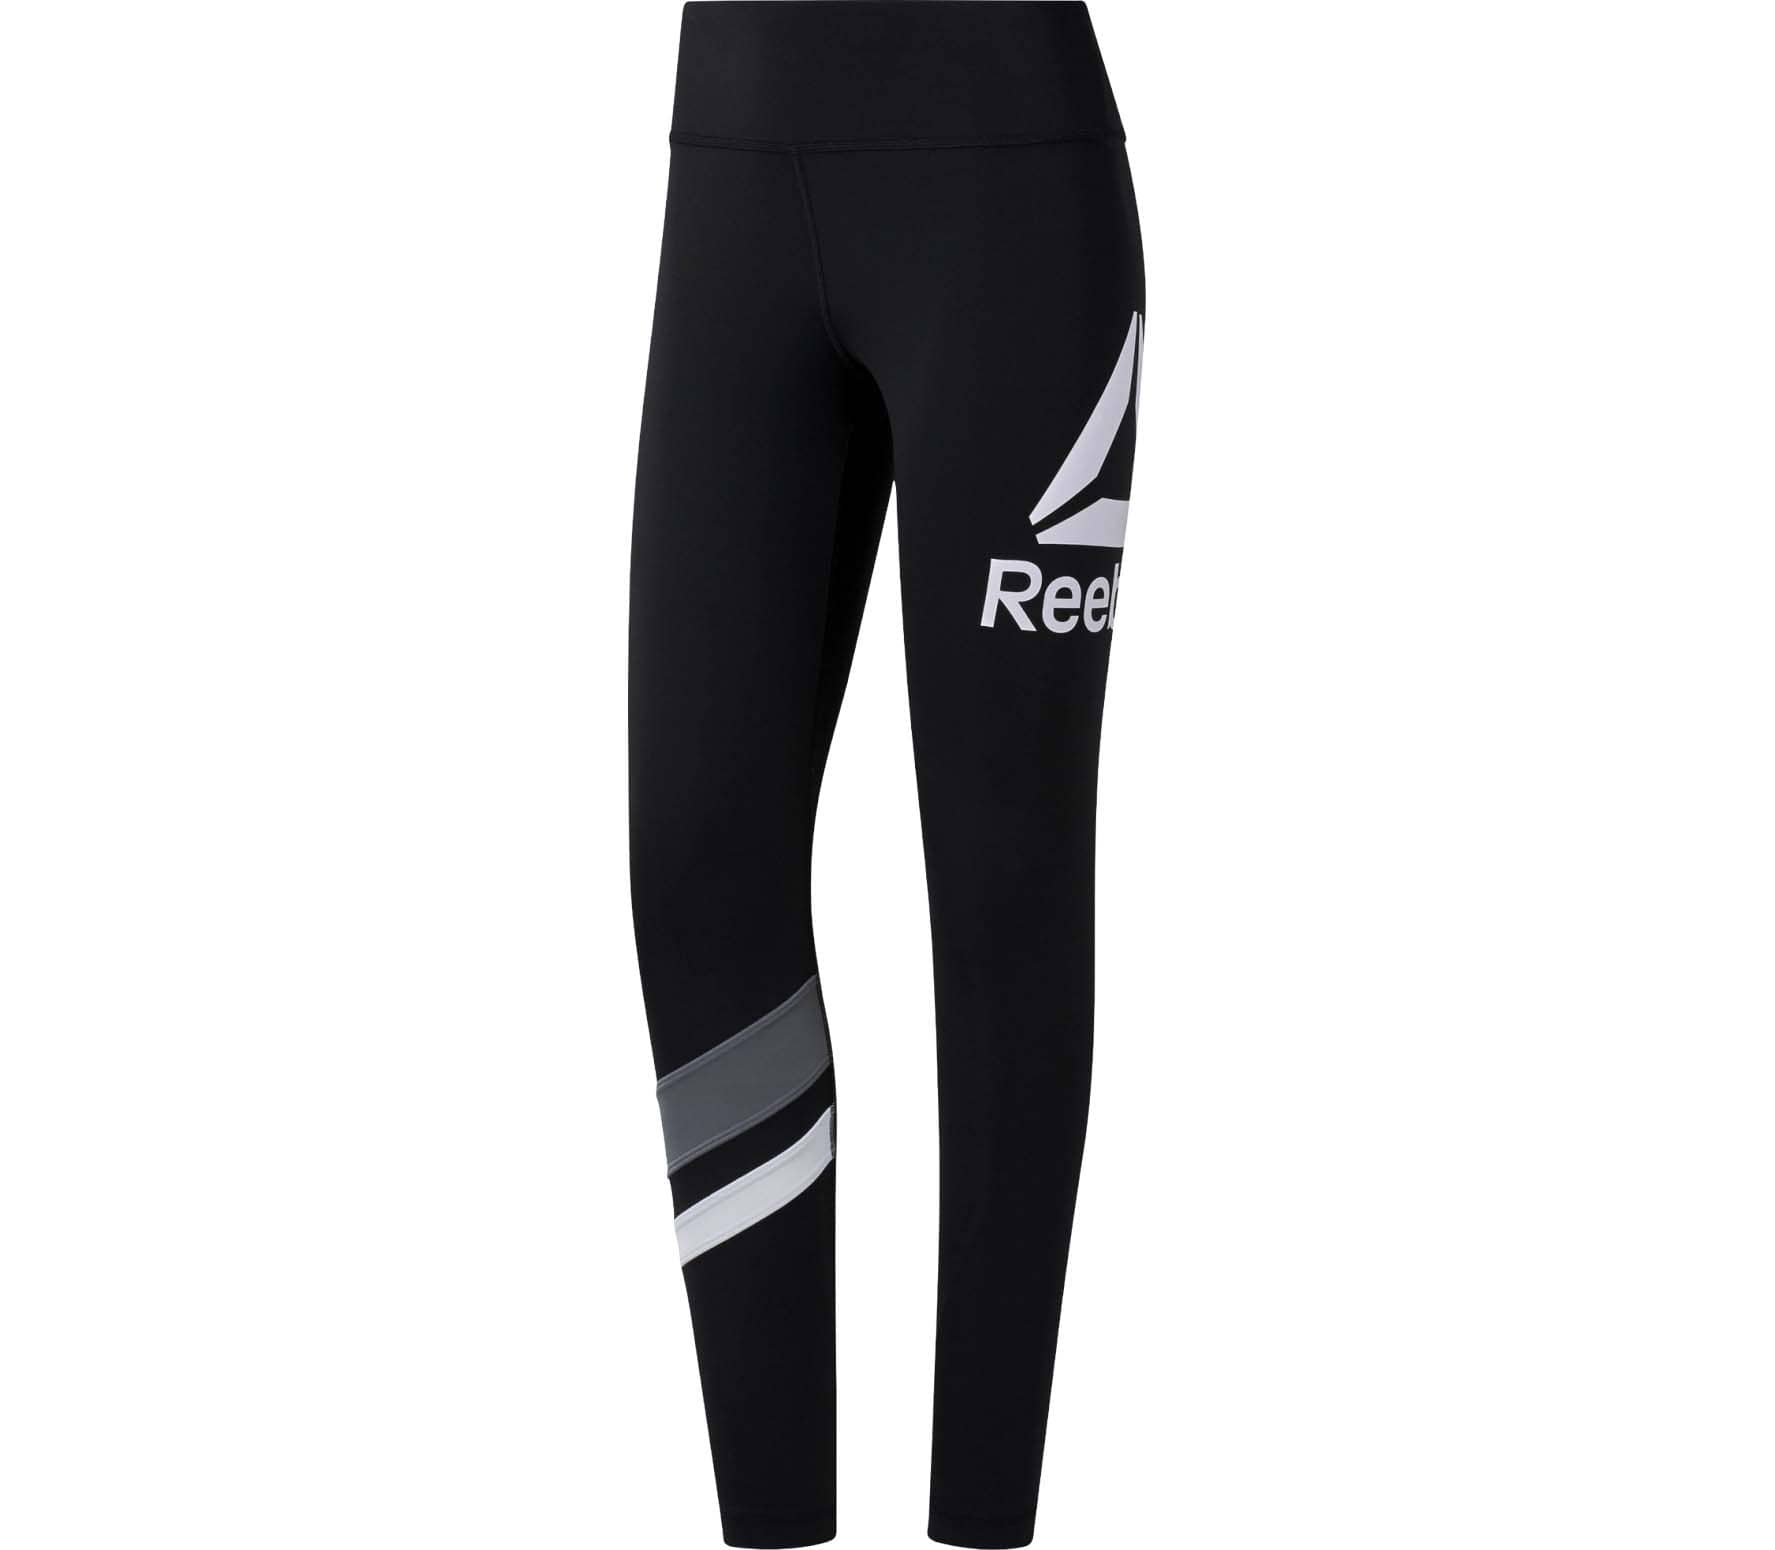 3c82a369661 Reebok Wor Big Delta Women Training Tights black - buy it at the ...